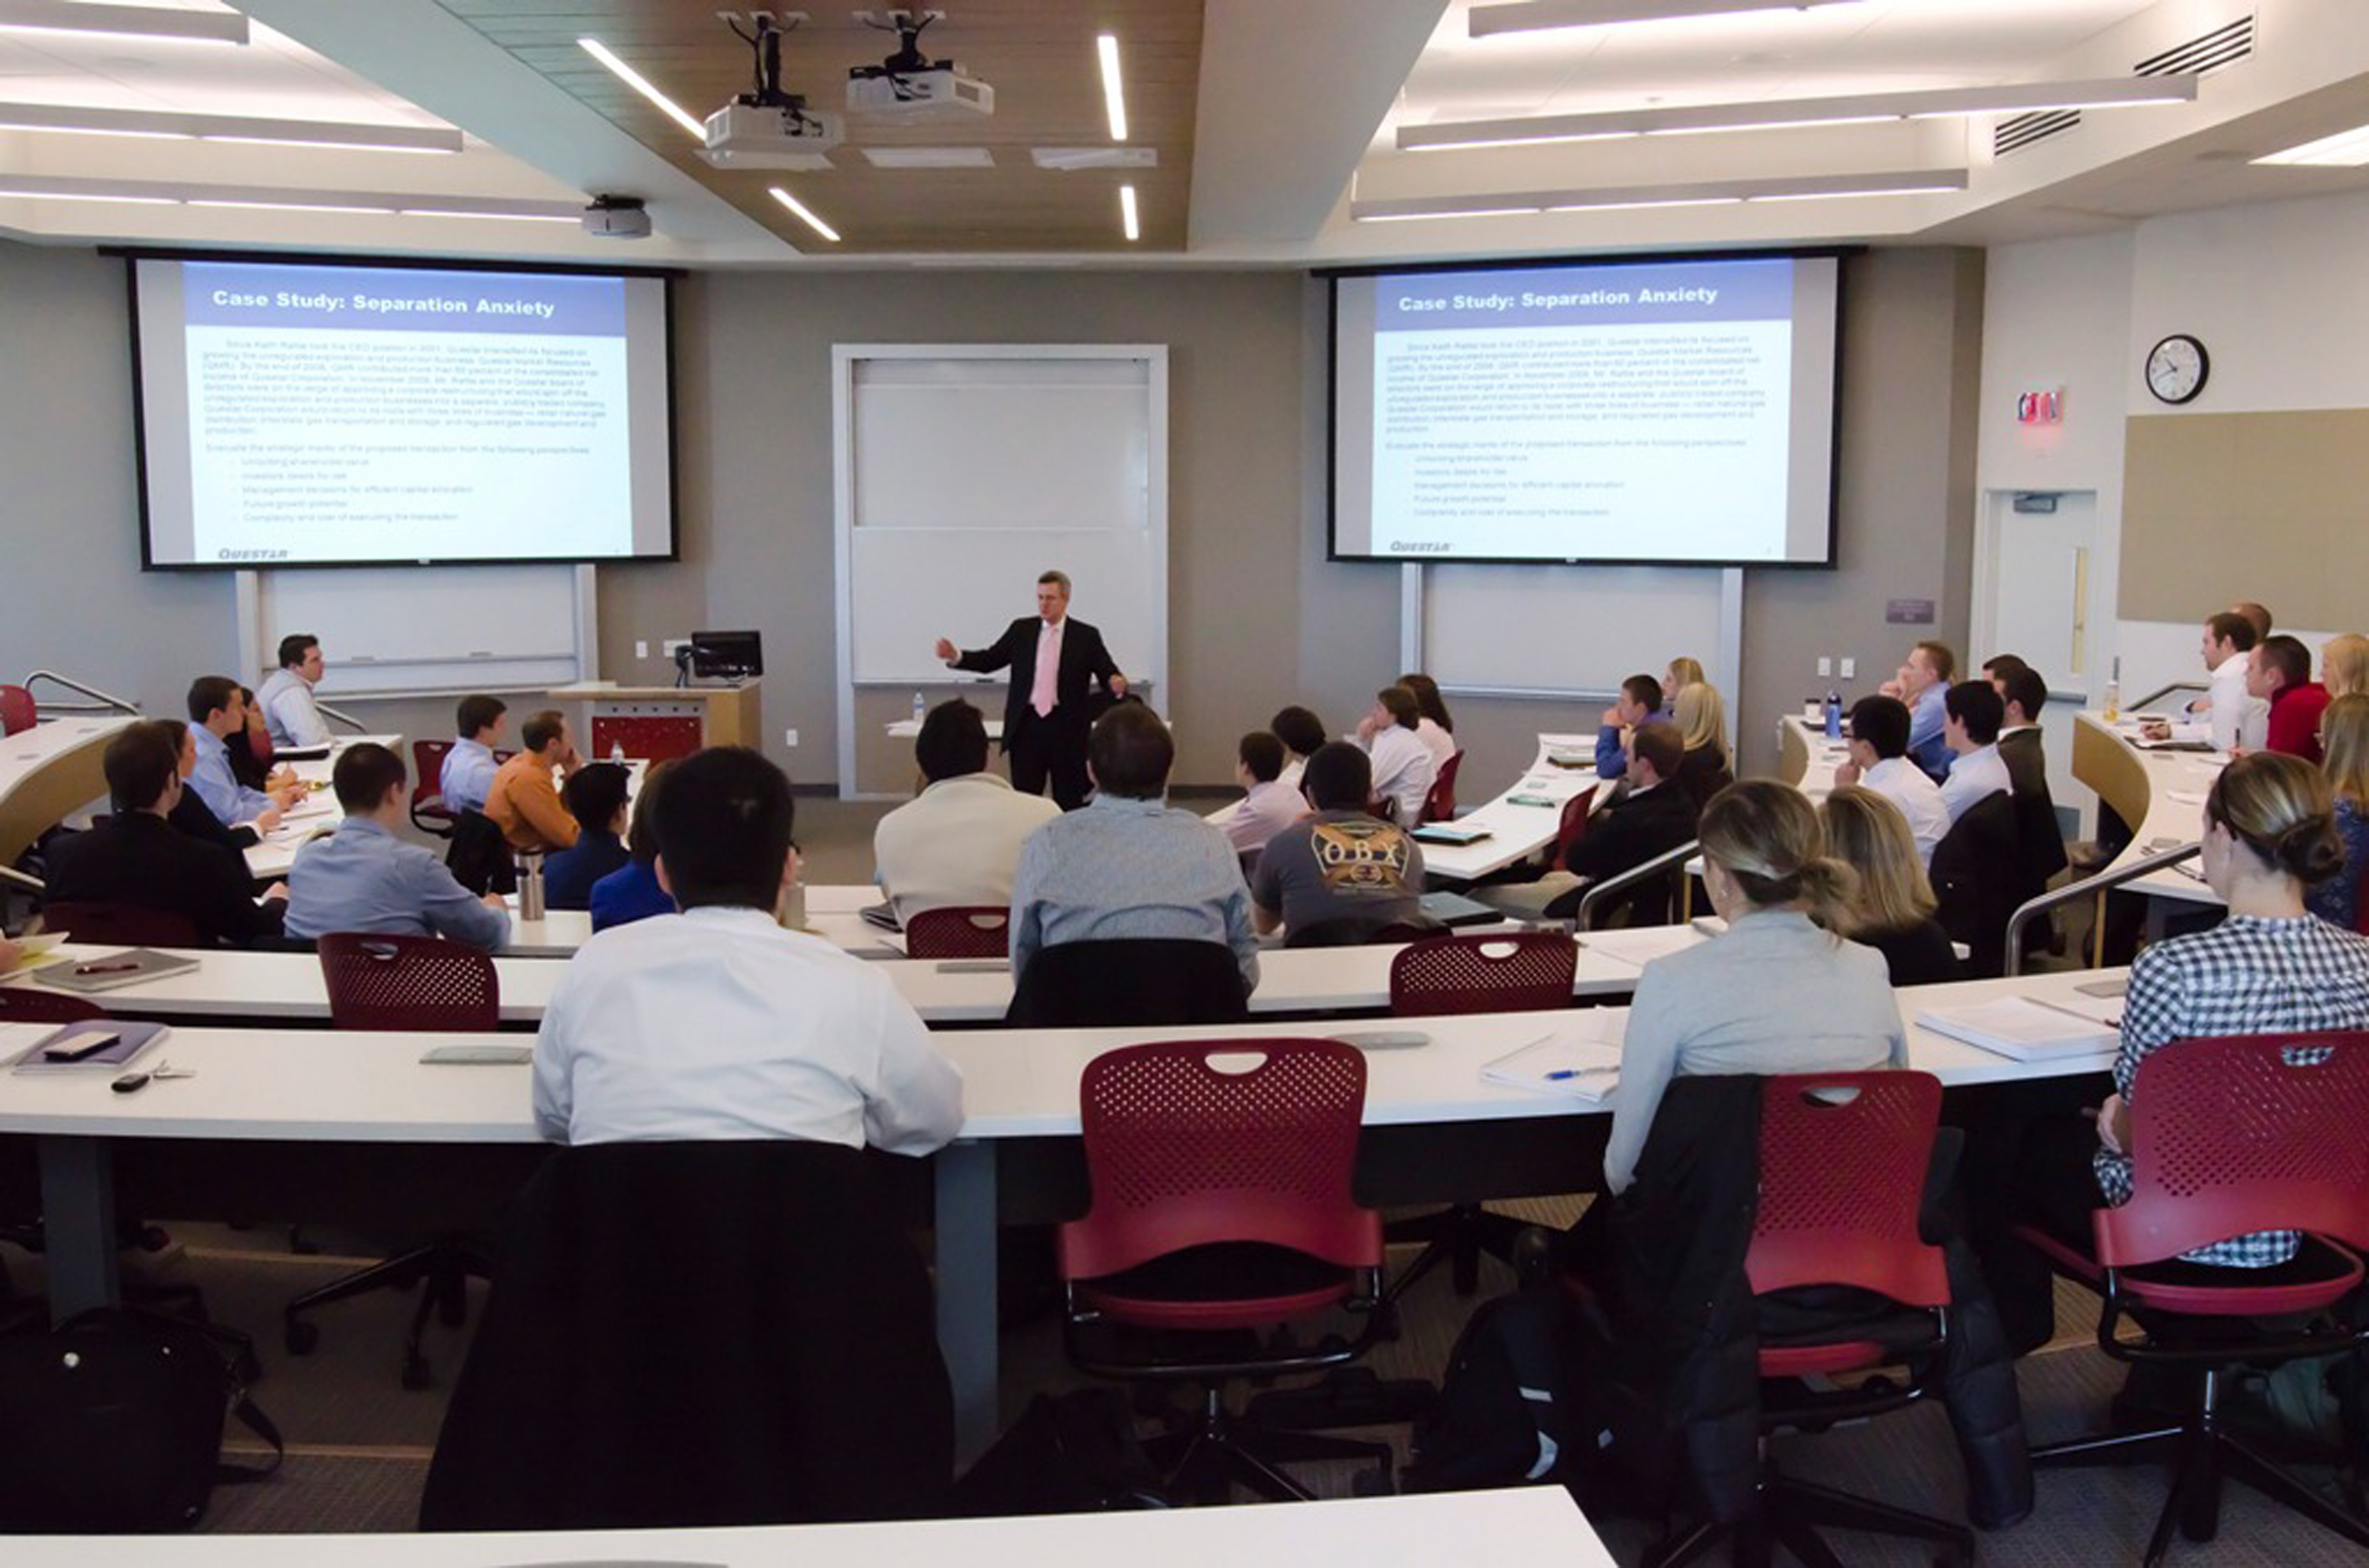 The David Eccles School of Business is now offering an Interdisciplinary Certificate in Entrepreneurship for undergraduates.